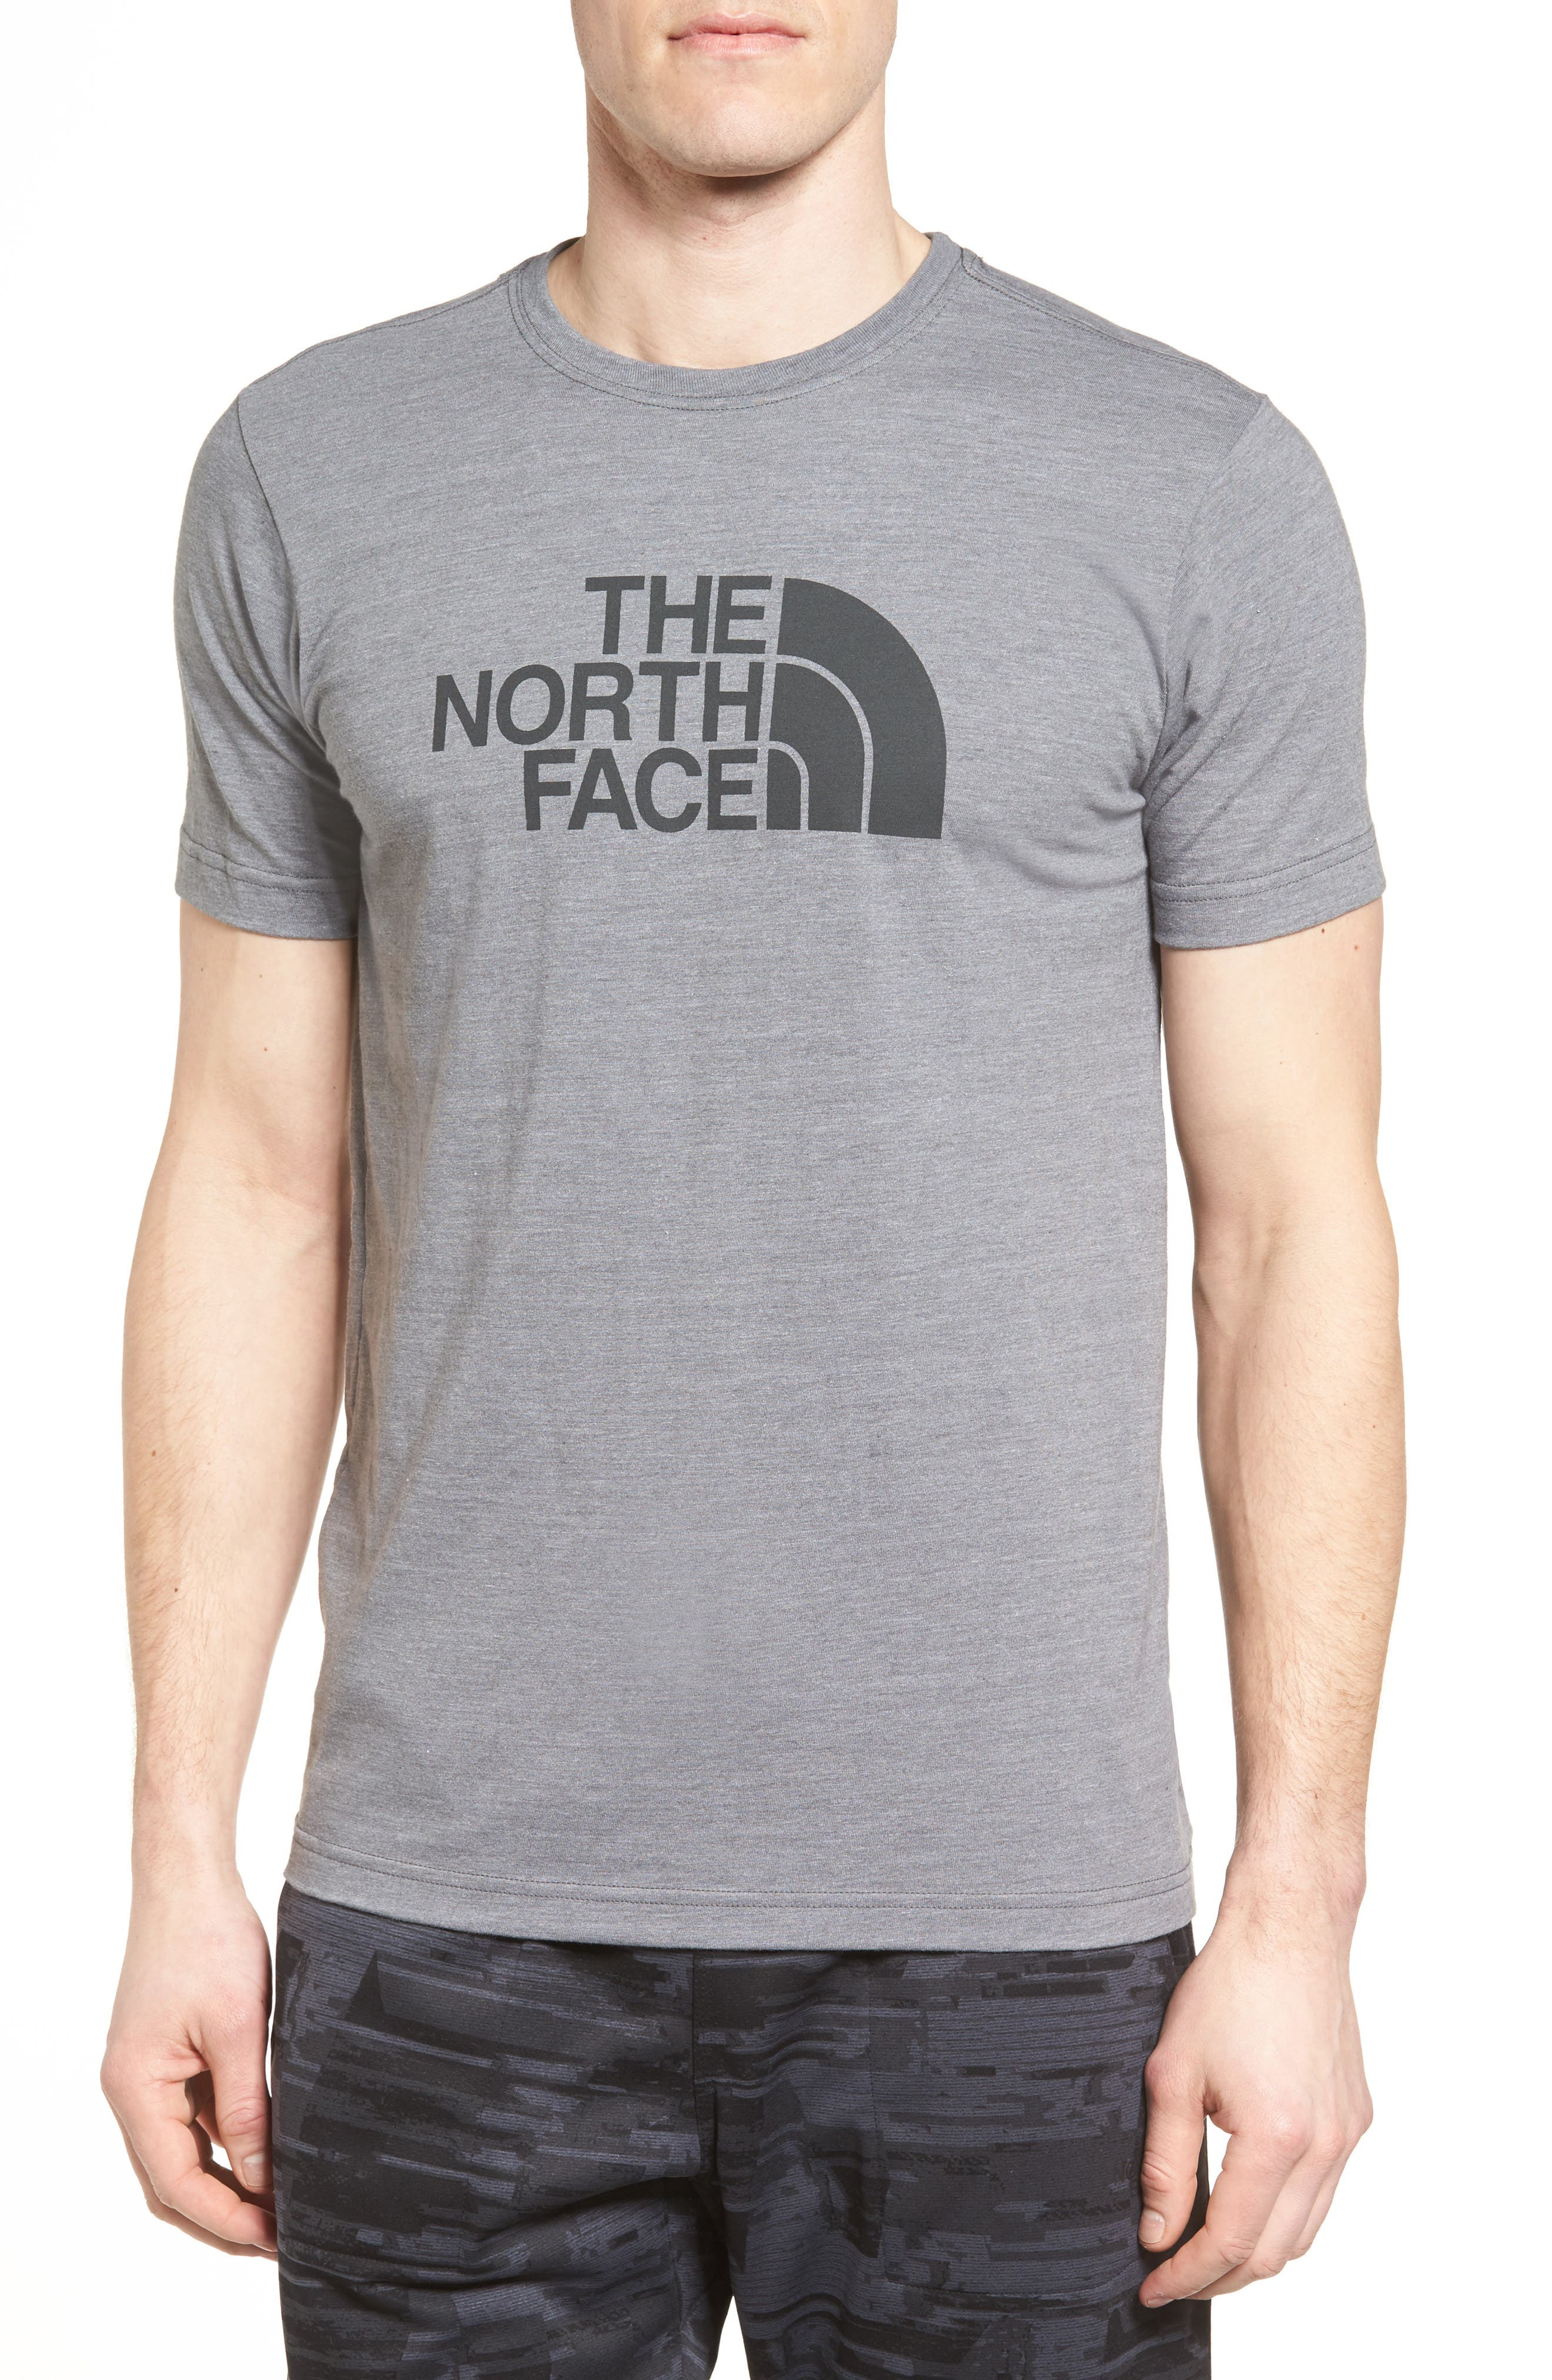 The North Face Half Dome Graphic T-Shirt